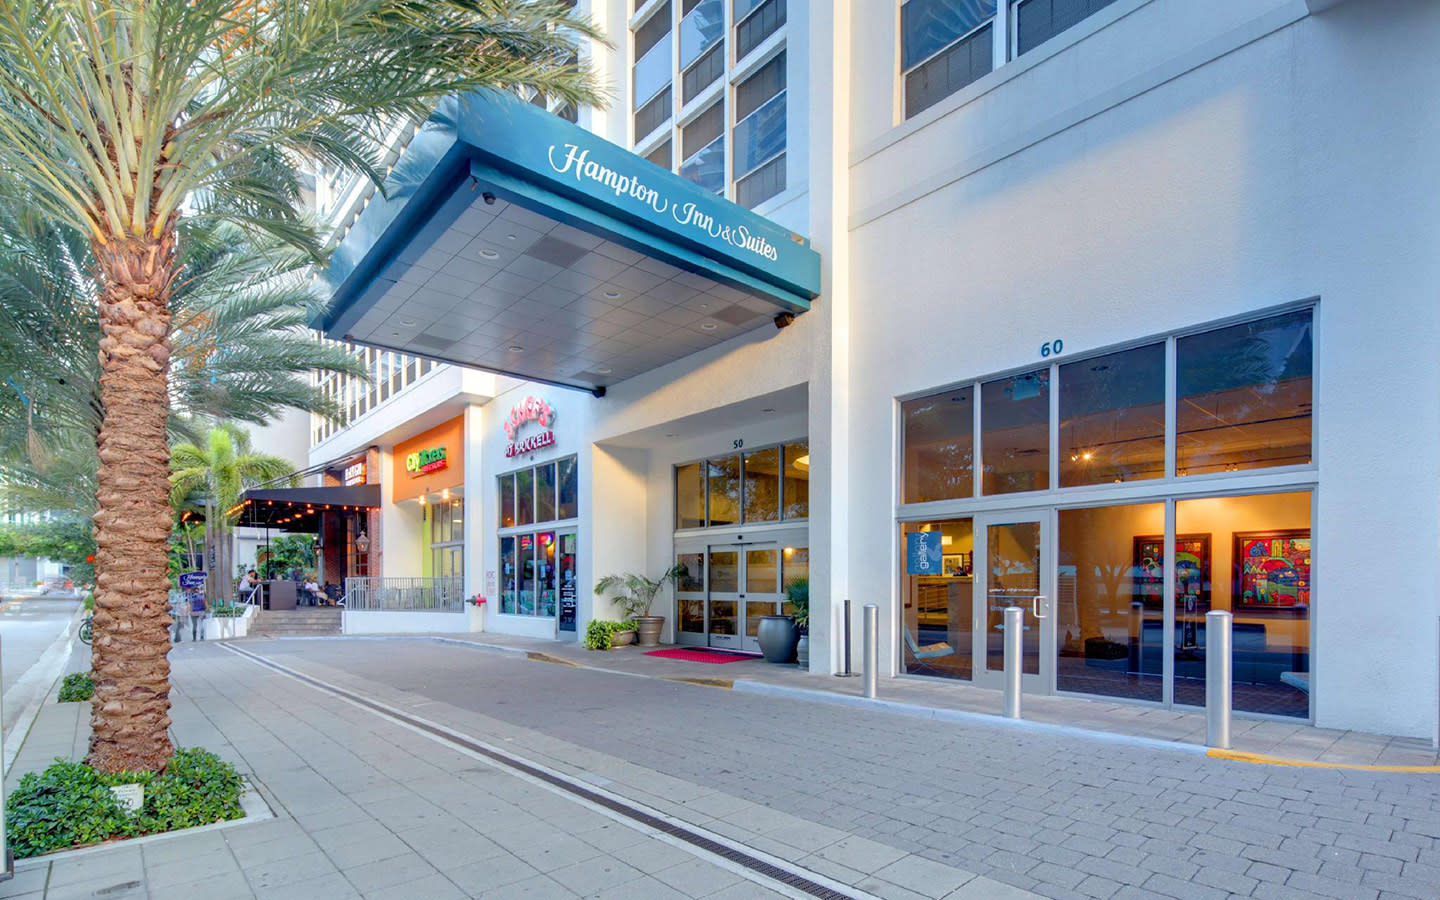 The best value located right on Brickell